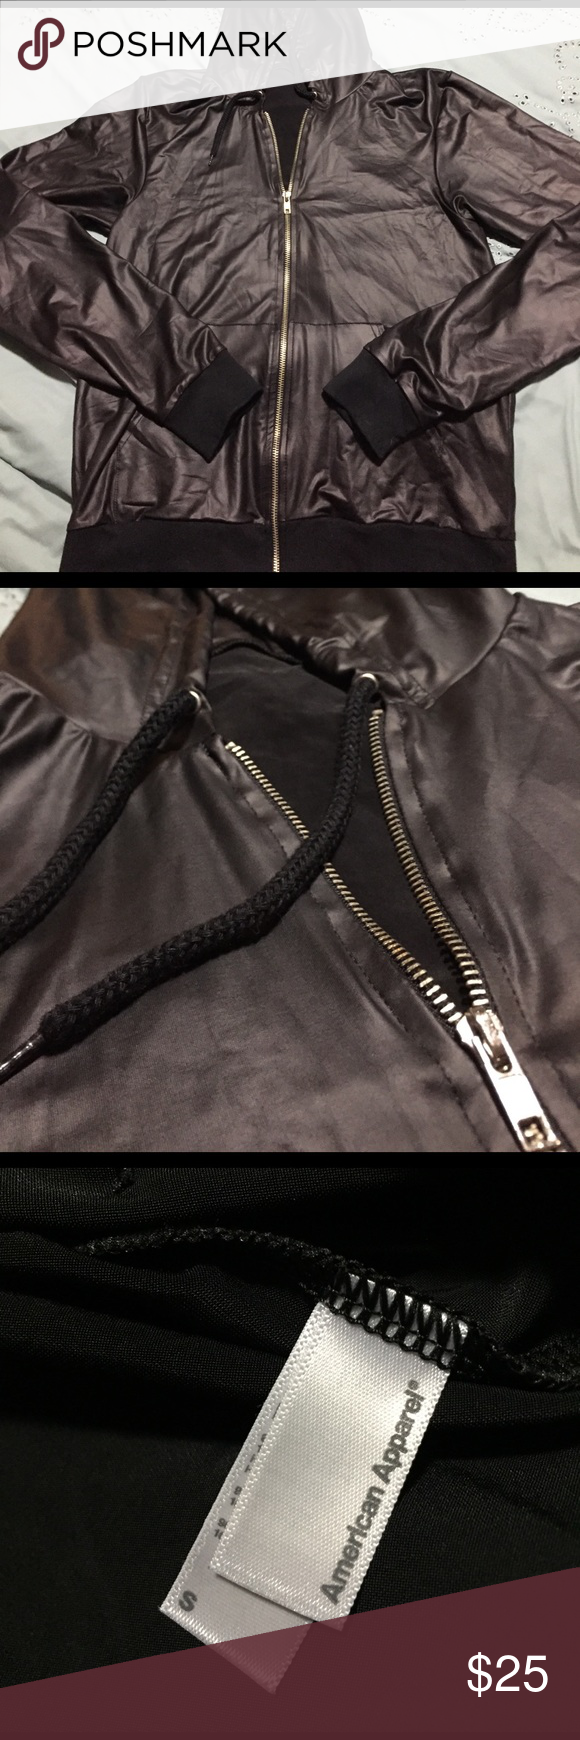 MENS THIN FAUX LEATHER JACKET Faux leather jackets, Faux